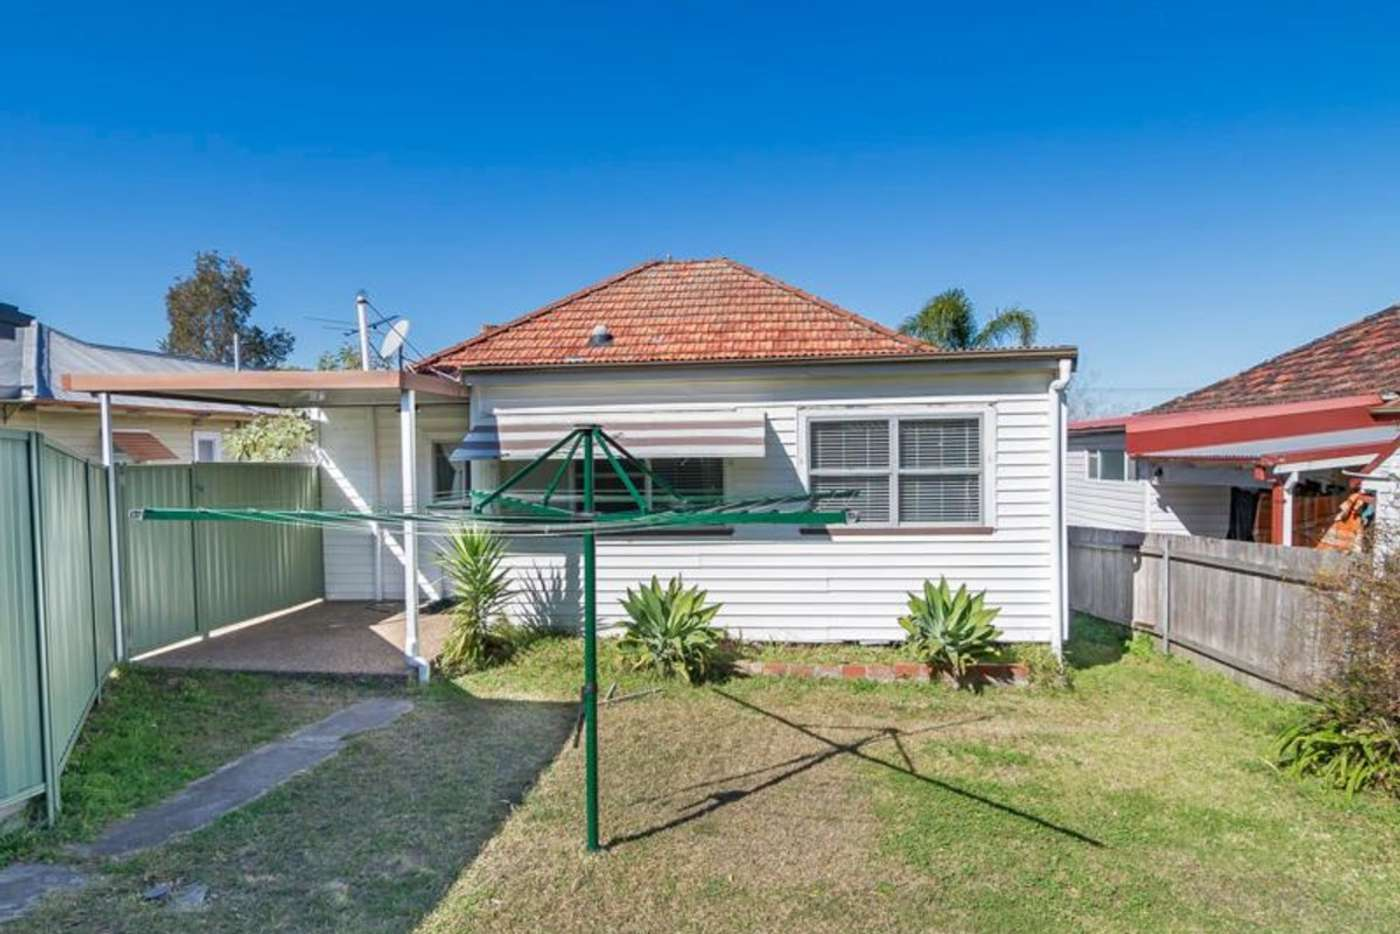 Seventh view of Homely house listing, 24 Fussell Street, Birmingham Gardens NSW 2287